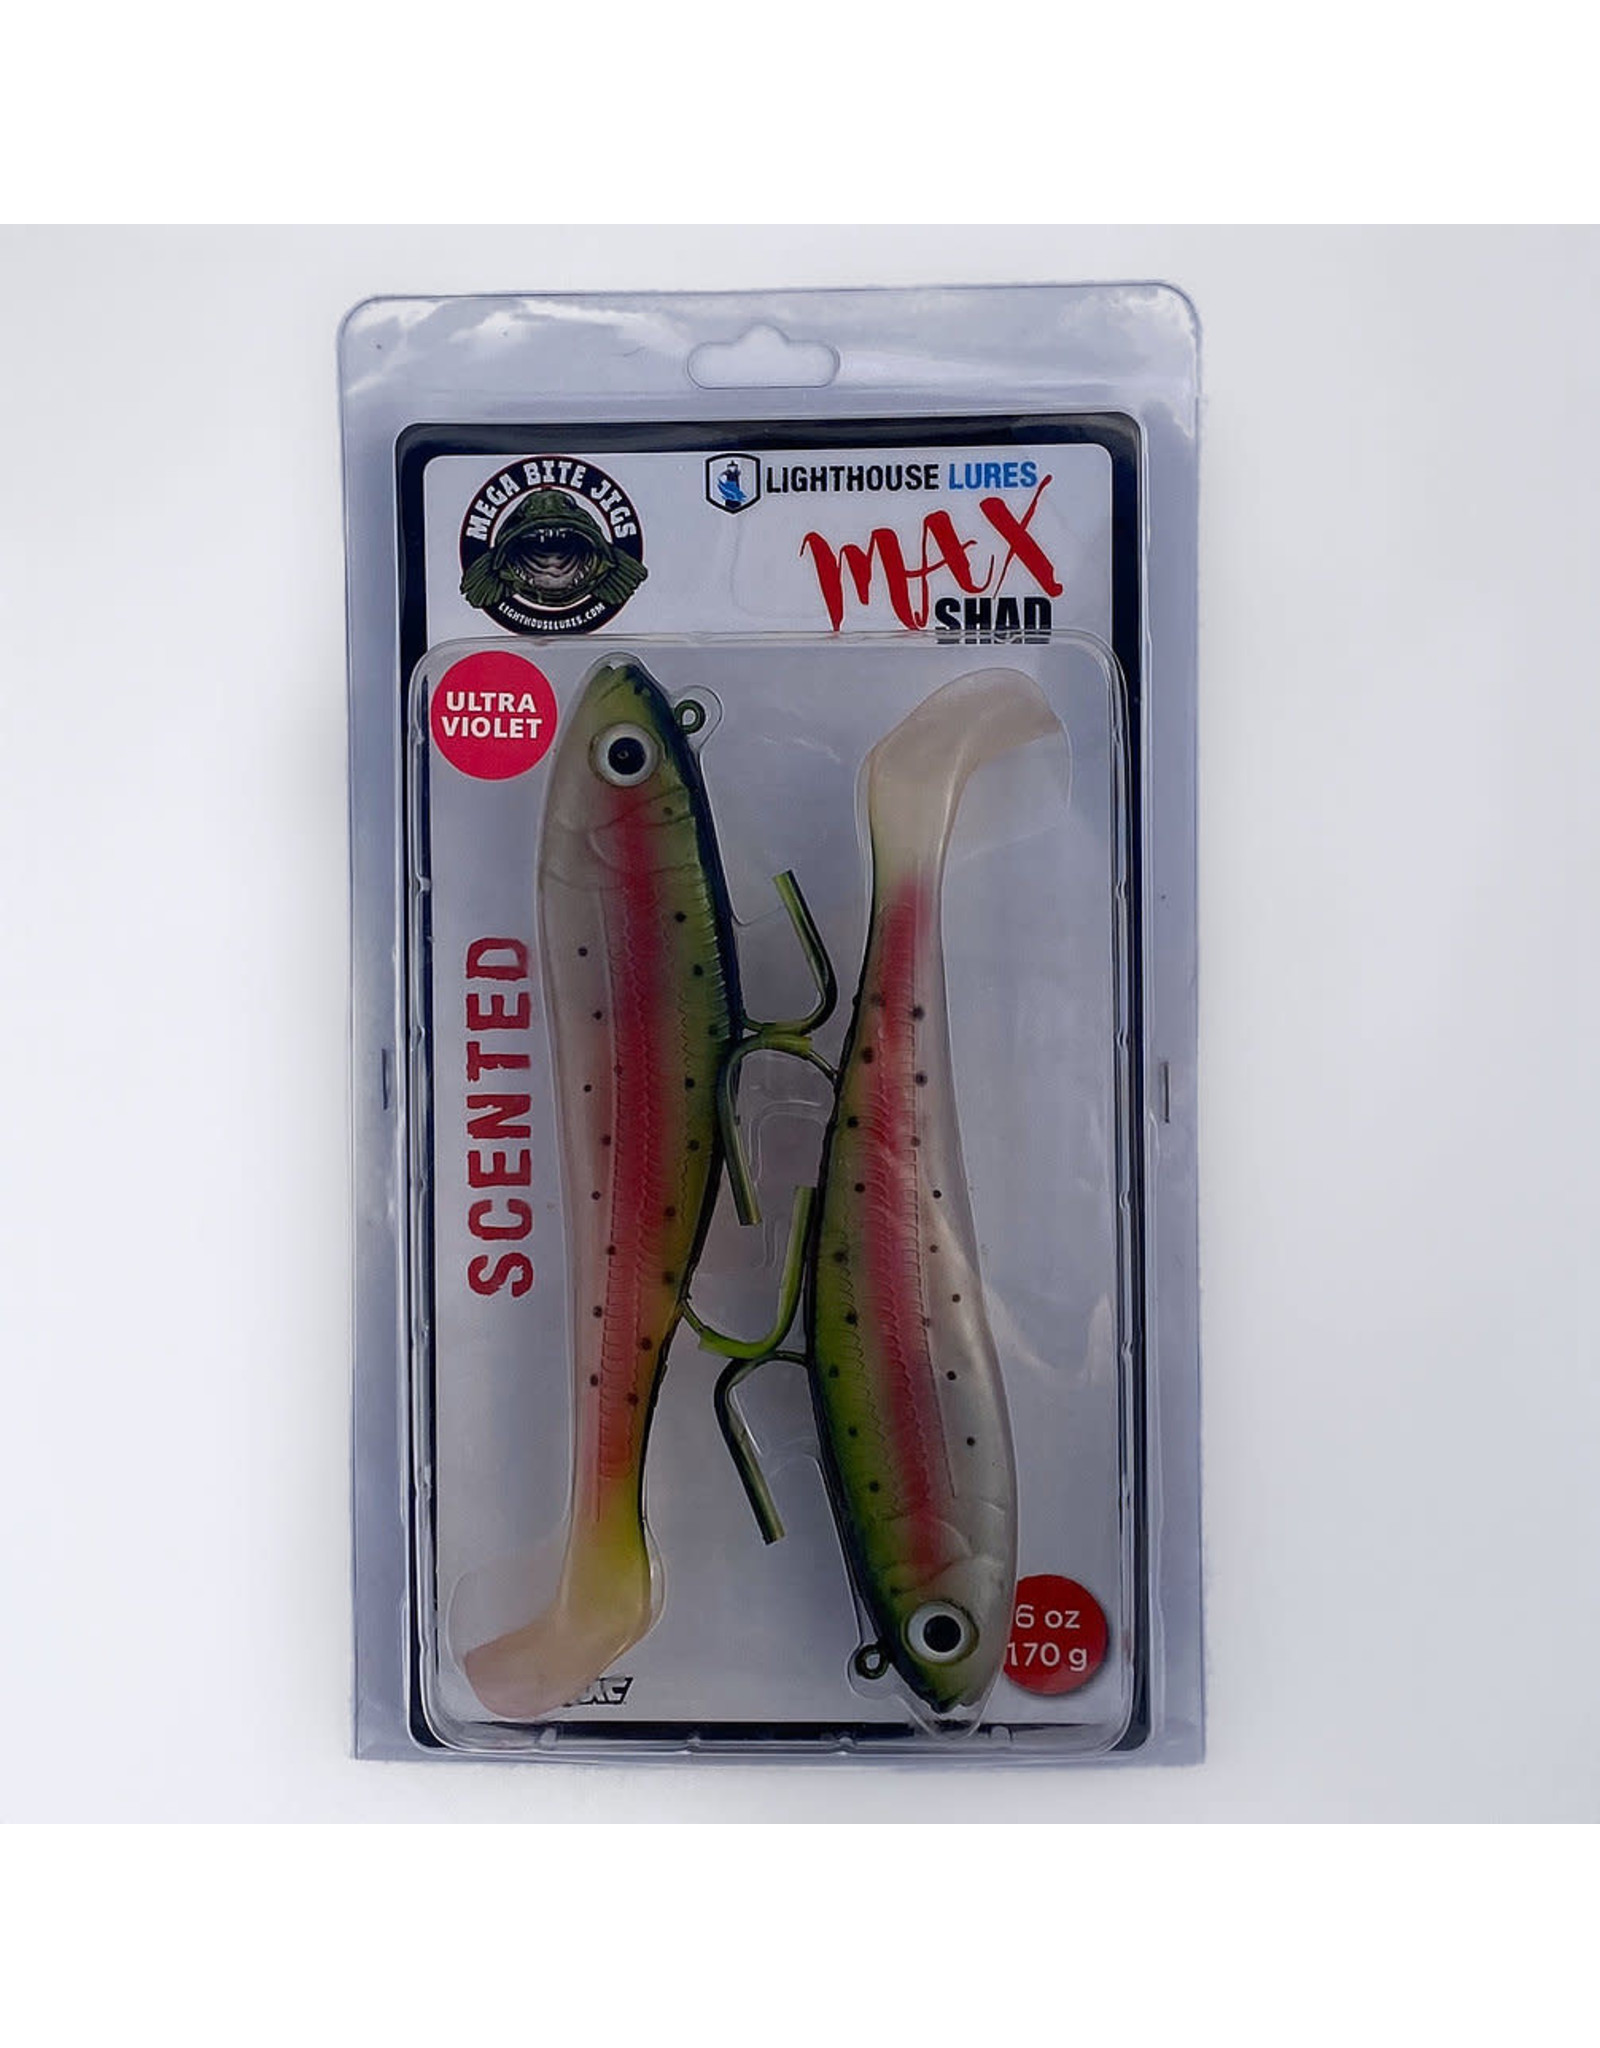 LIGHTHOUSE LURES LIGHTHOUSE LURES MAX SHAD 6 oz